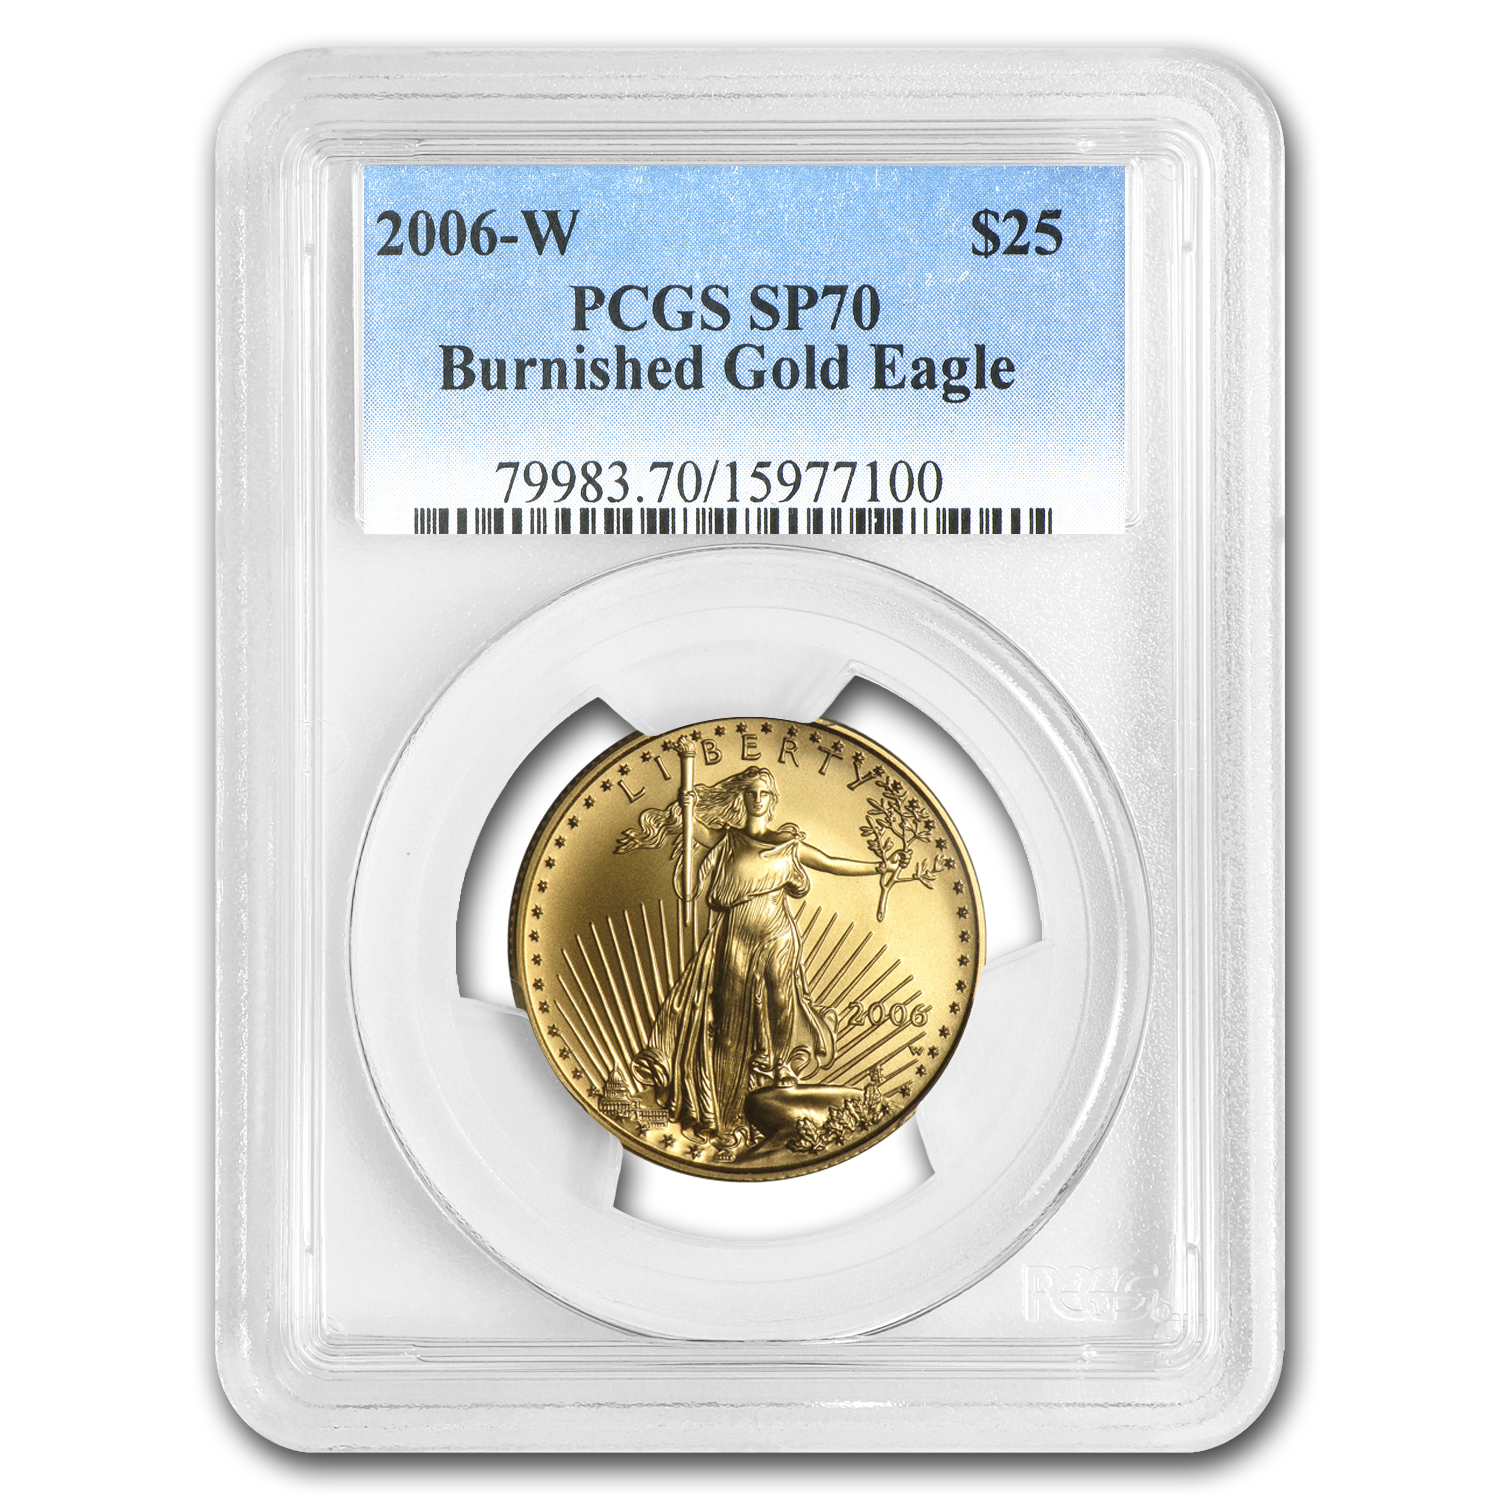 2006-W 1/2 oz Burnished Gold American Eagle MS-70 PCGS